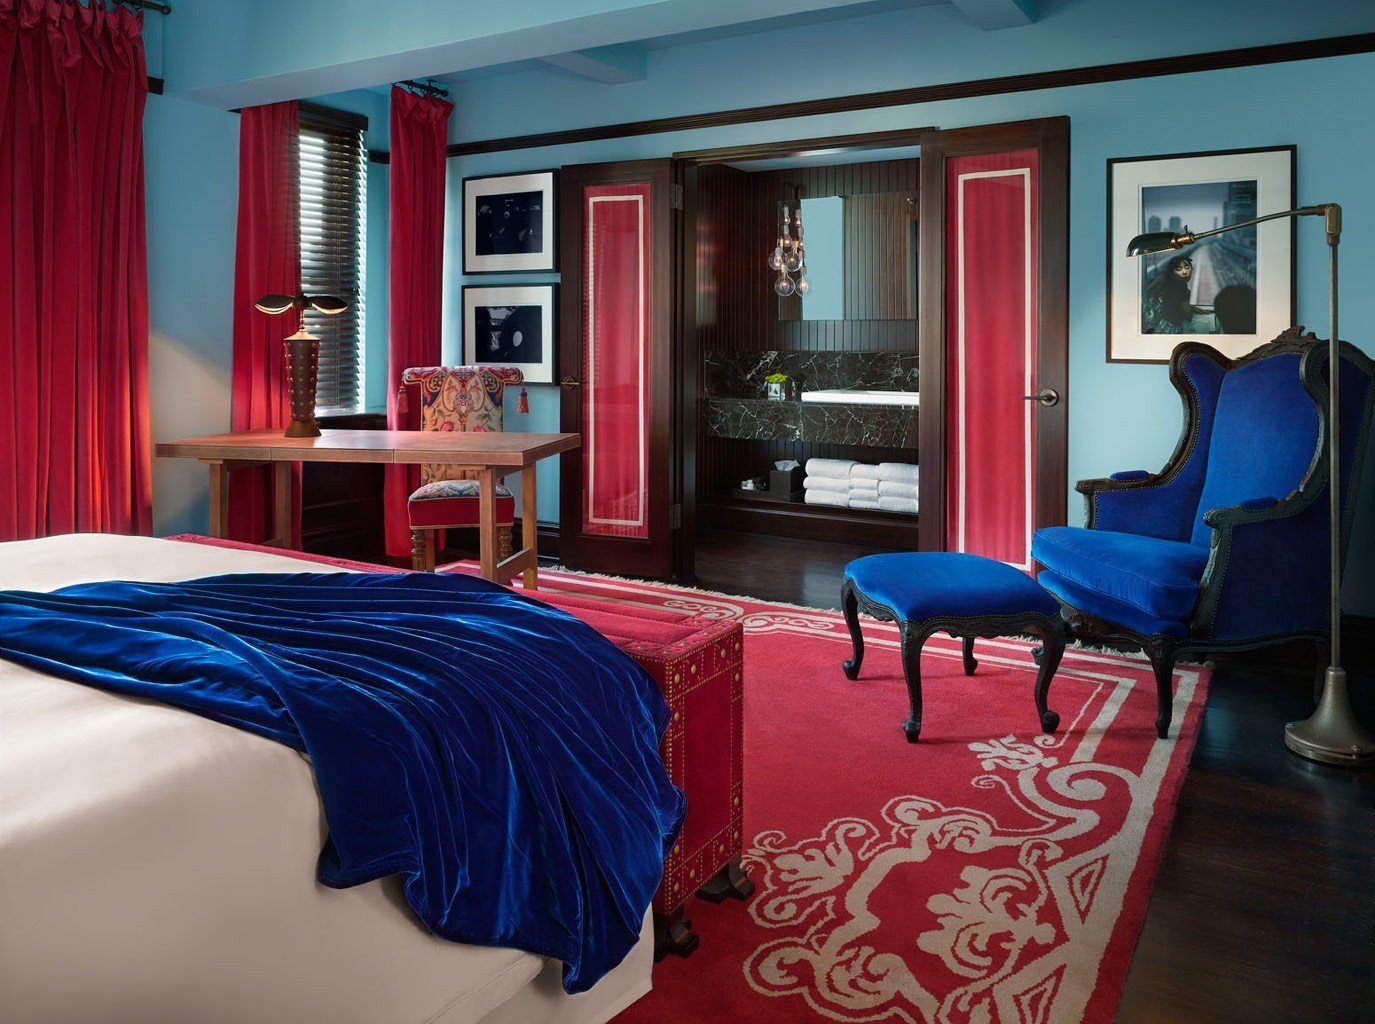 Hotels Offbeat indoor room wall floor red window bed property Living house Suite interior design furniture home living room Bedroom estate real estate cottage apartment blue decorated area bright colorful